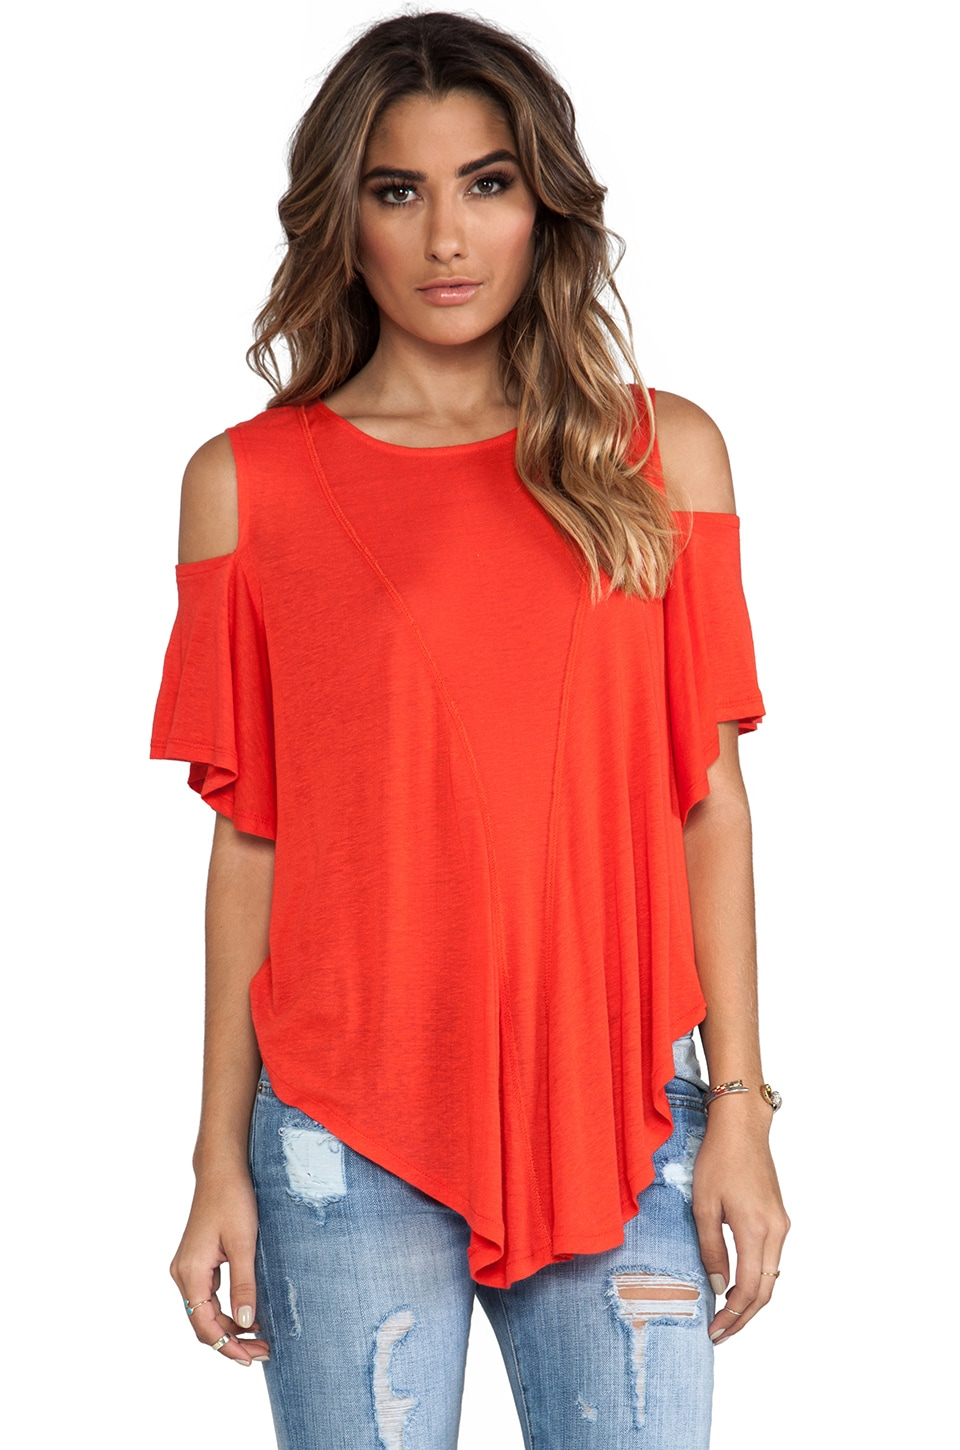 Free People Cold Shoulder Seamed Top in Bright Red